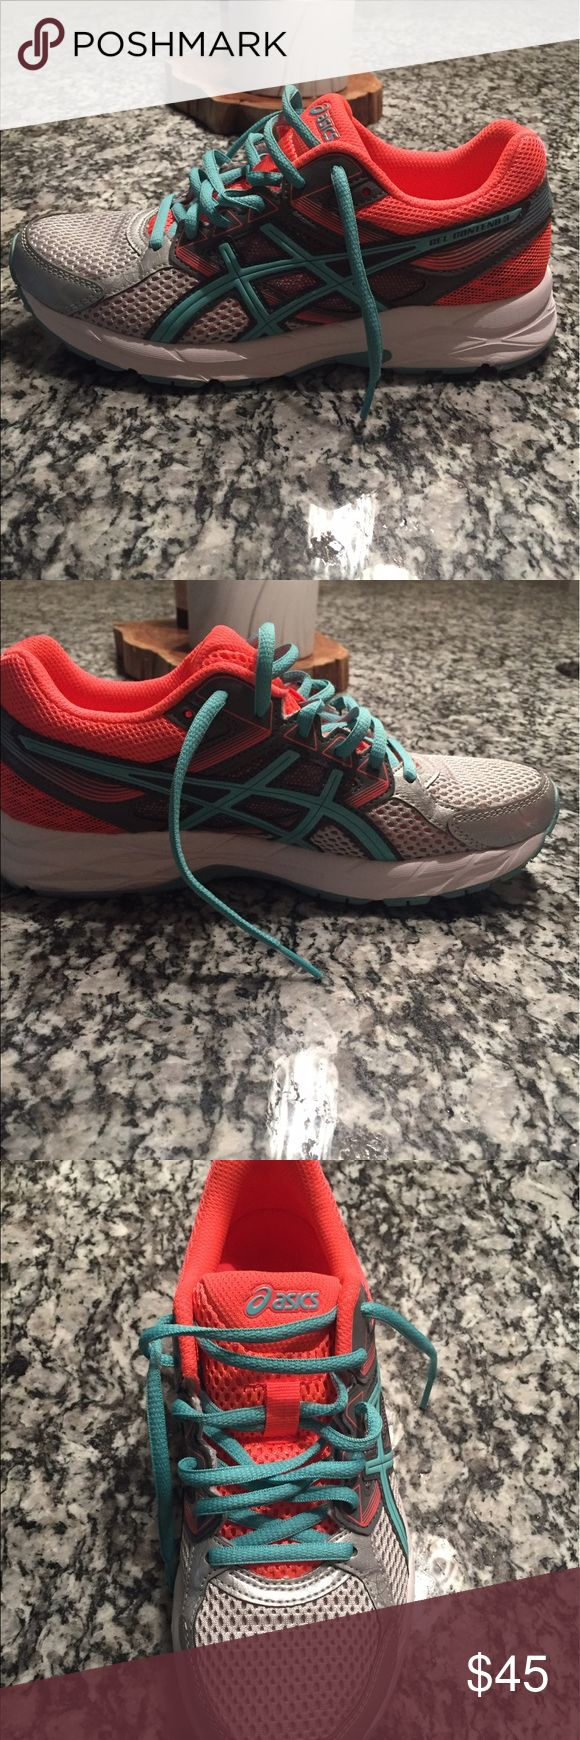 ASICS Women's GEL-Contend 3 Running Shoe ASICS Women's GEL-Contend 3 Running Shoe, size US 6.5. Only worn once prior to determining they were a tad too small. Great, comfortable shoe. Purchased at an outlet out of state so unable to return. Asics Shoes Athletic Shoes